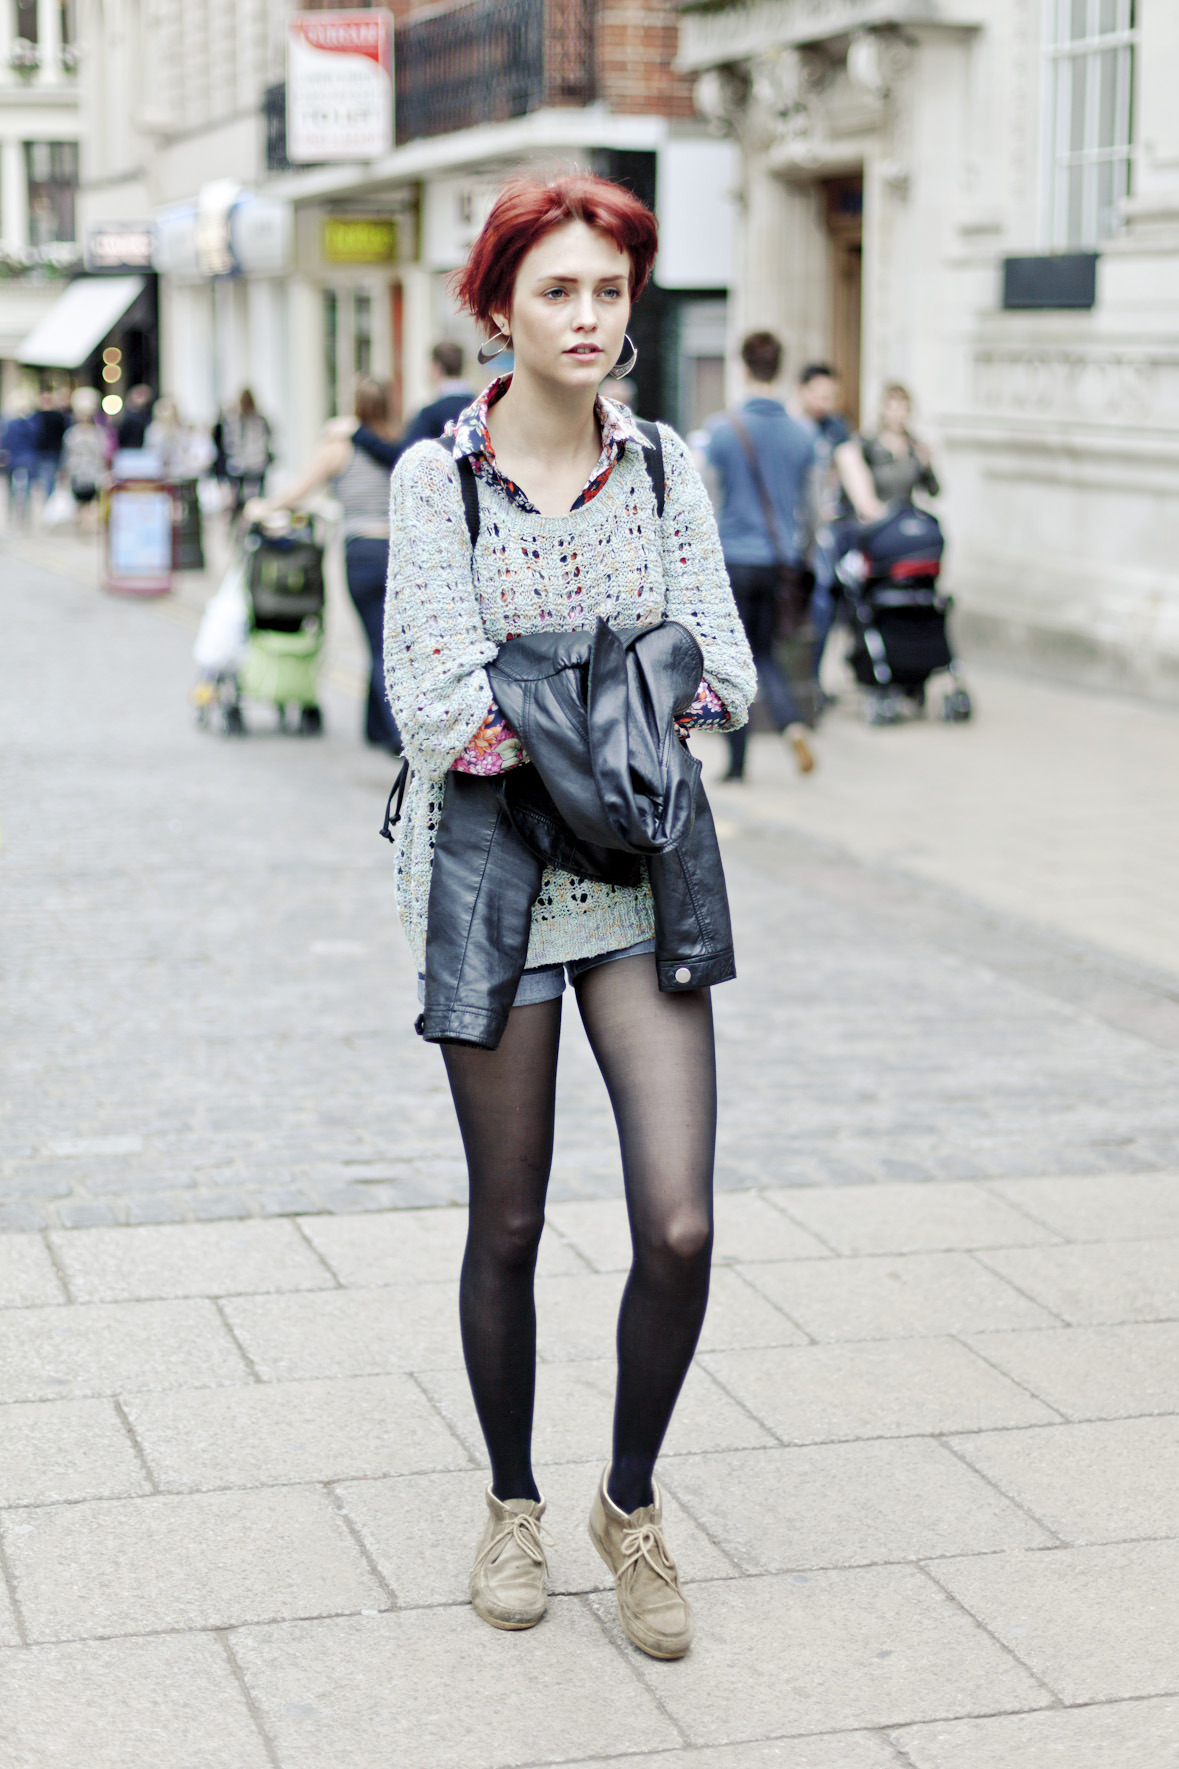 On the Street, Norwich FASHIONNIER, Street Style, Norwich http://in—the—doldrums.tumblr.com/